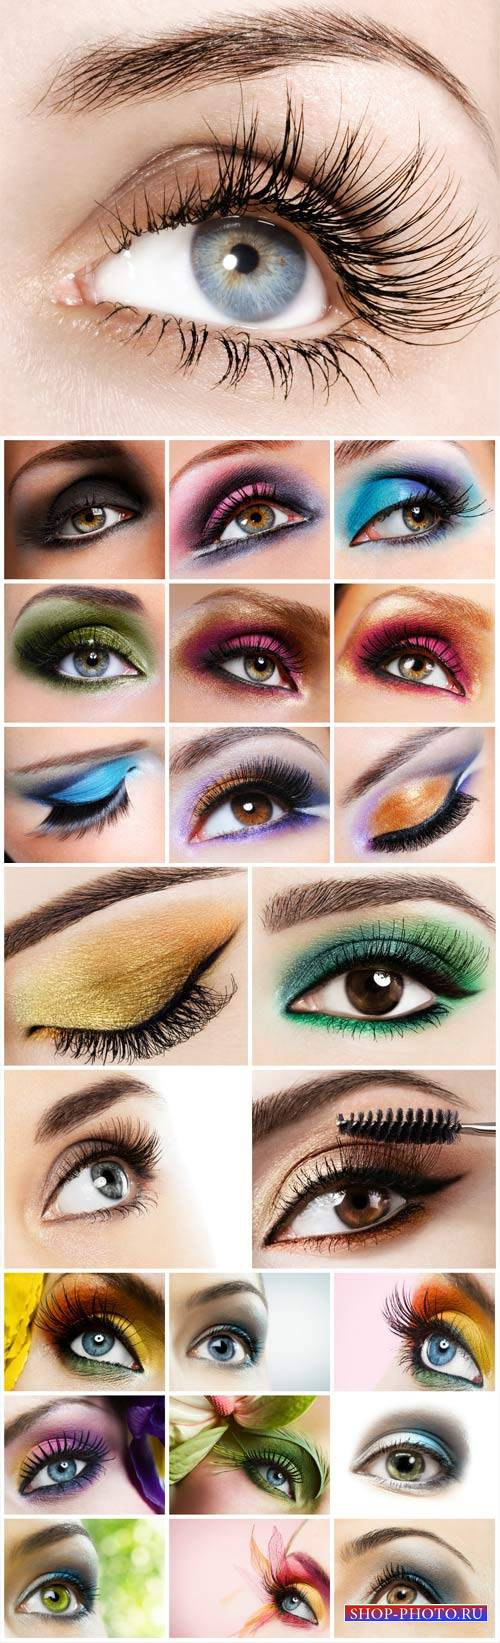 Eyes, beautiful makeup - stock photos